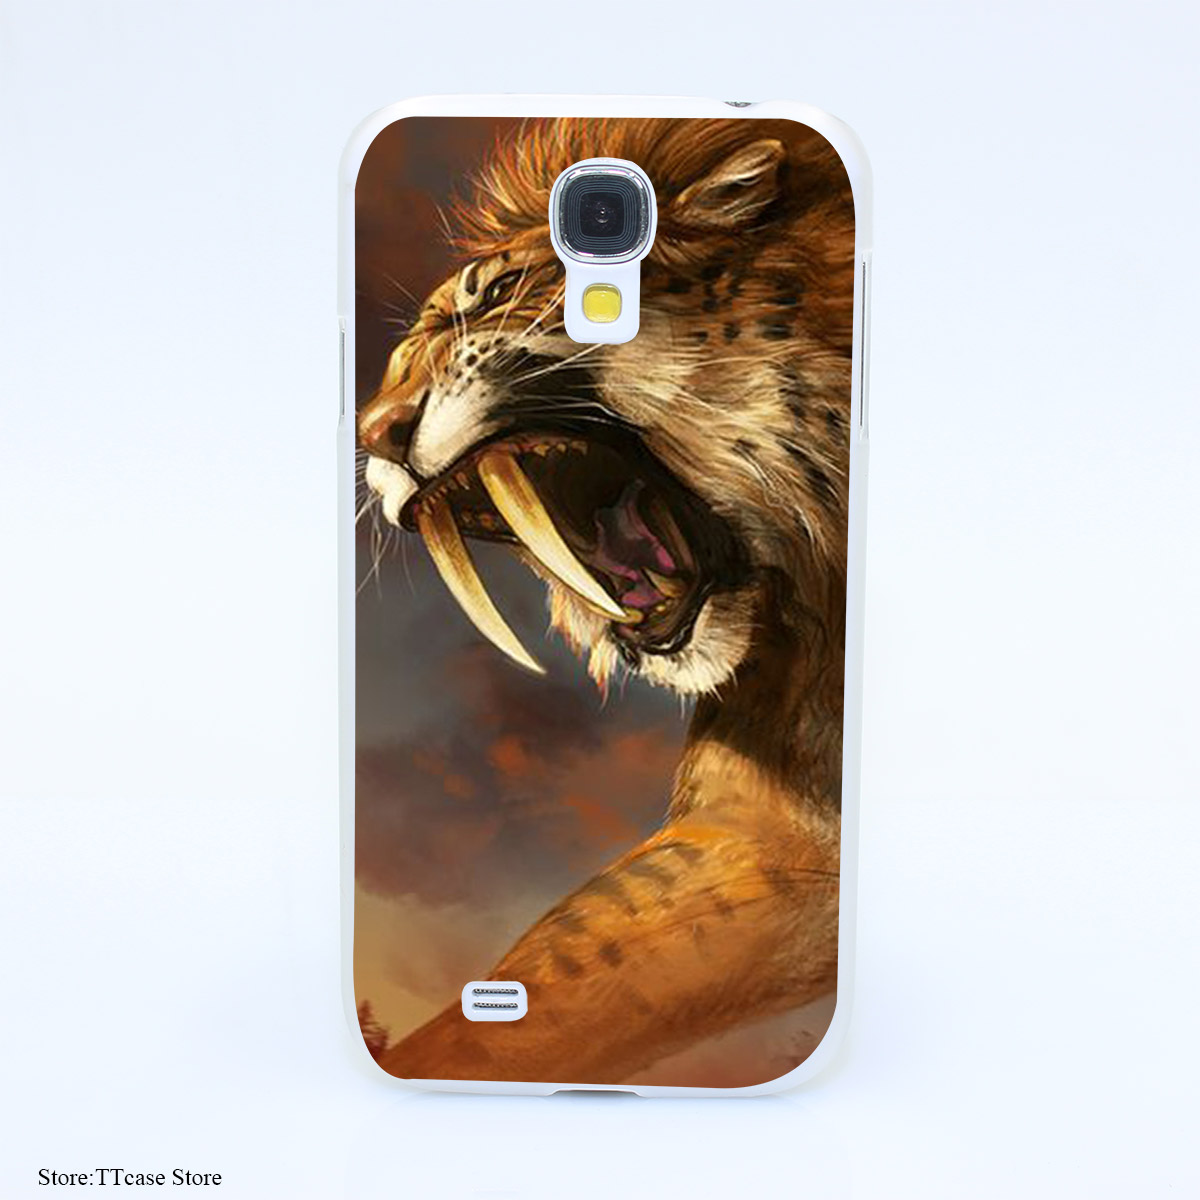 854CA Cute Animal Long tooth tiger Hard Transparent Case Cover for Galaxy S2 S3 S4 S5 & Mini S6 S7 & edge Plus(China (Mainland))